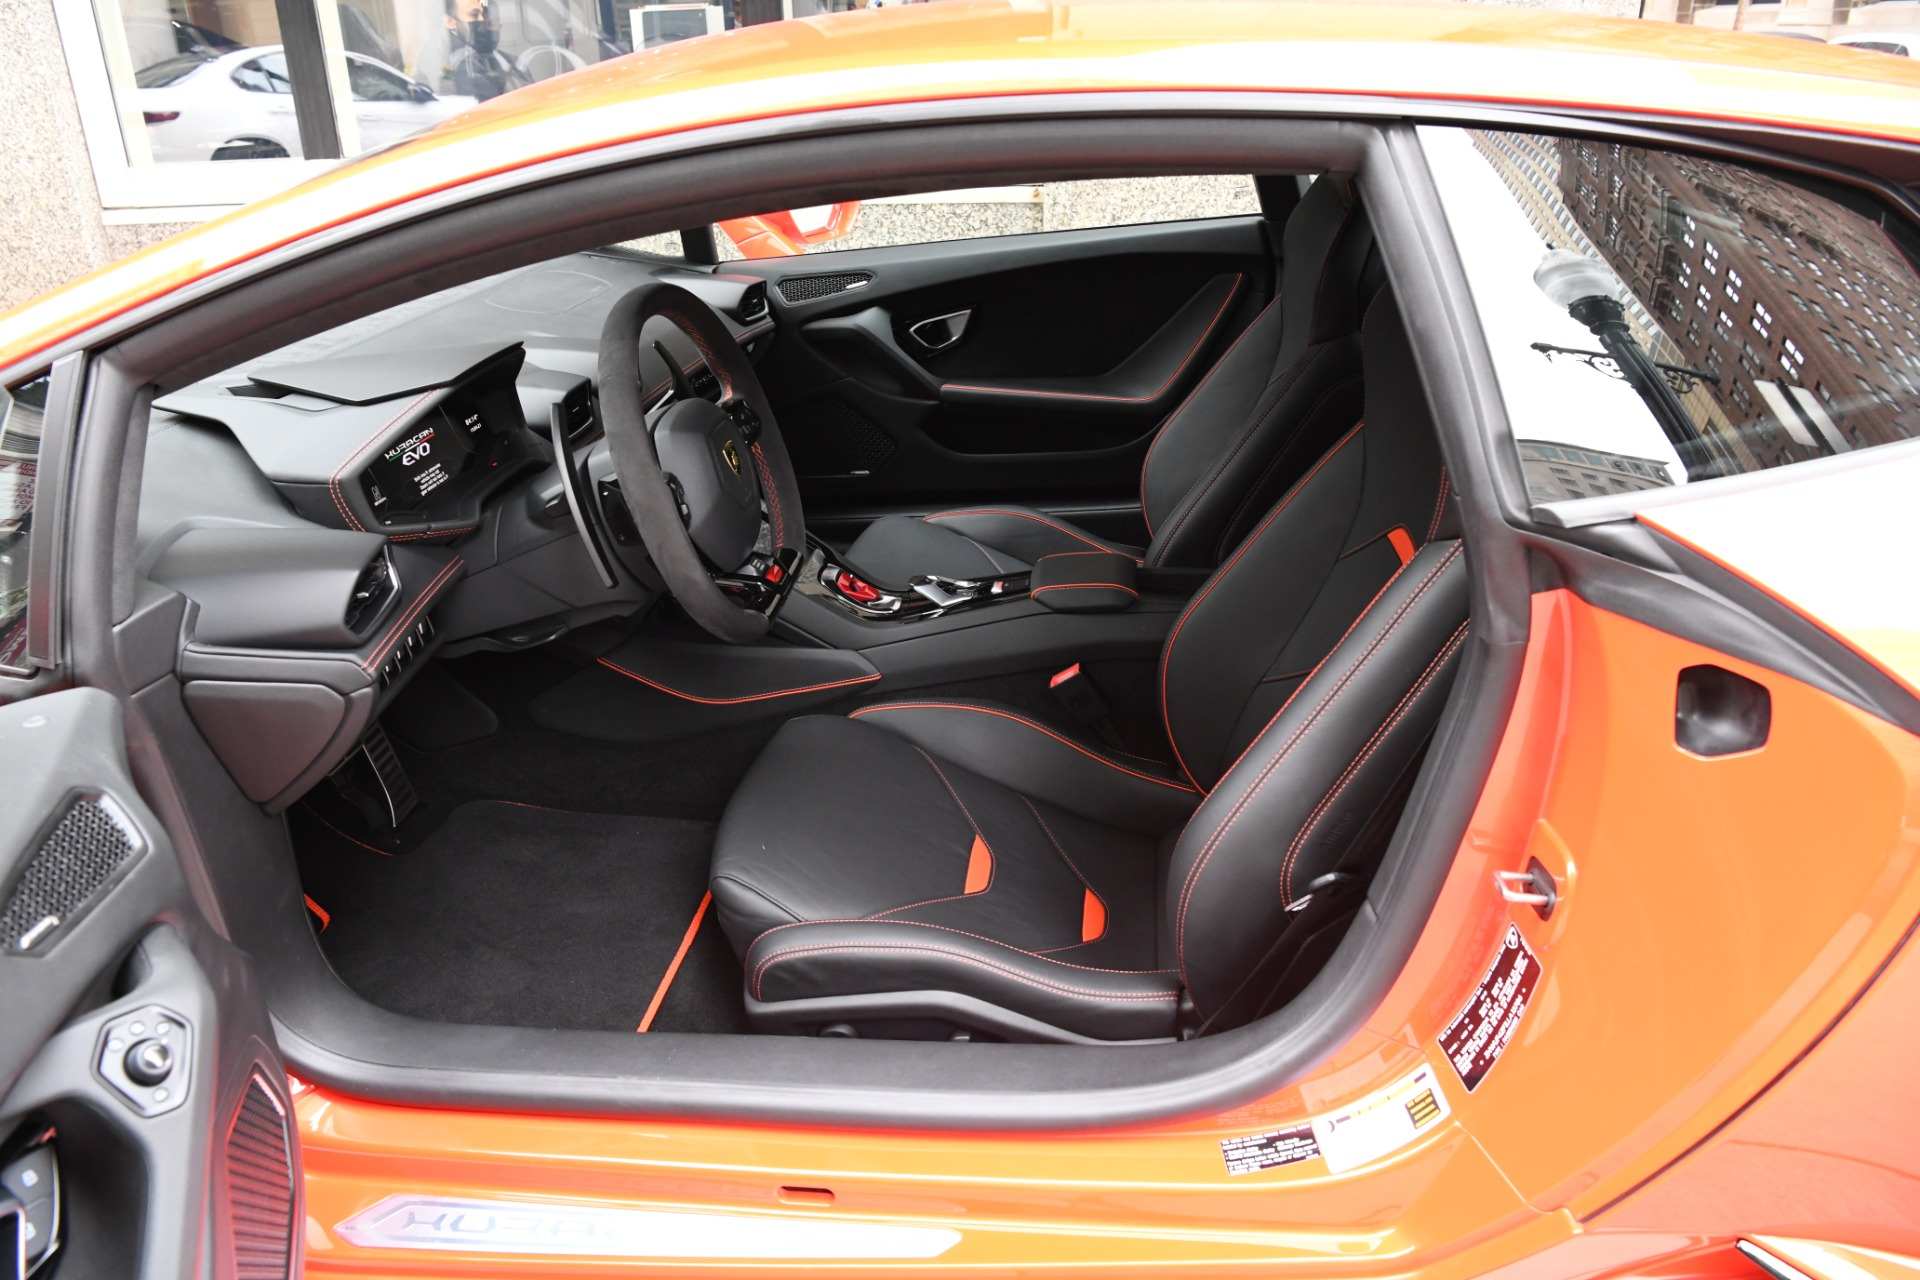 Used 2020 Lamborghini Huracan LP 640-4 EVO | Chicago, IL